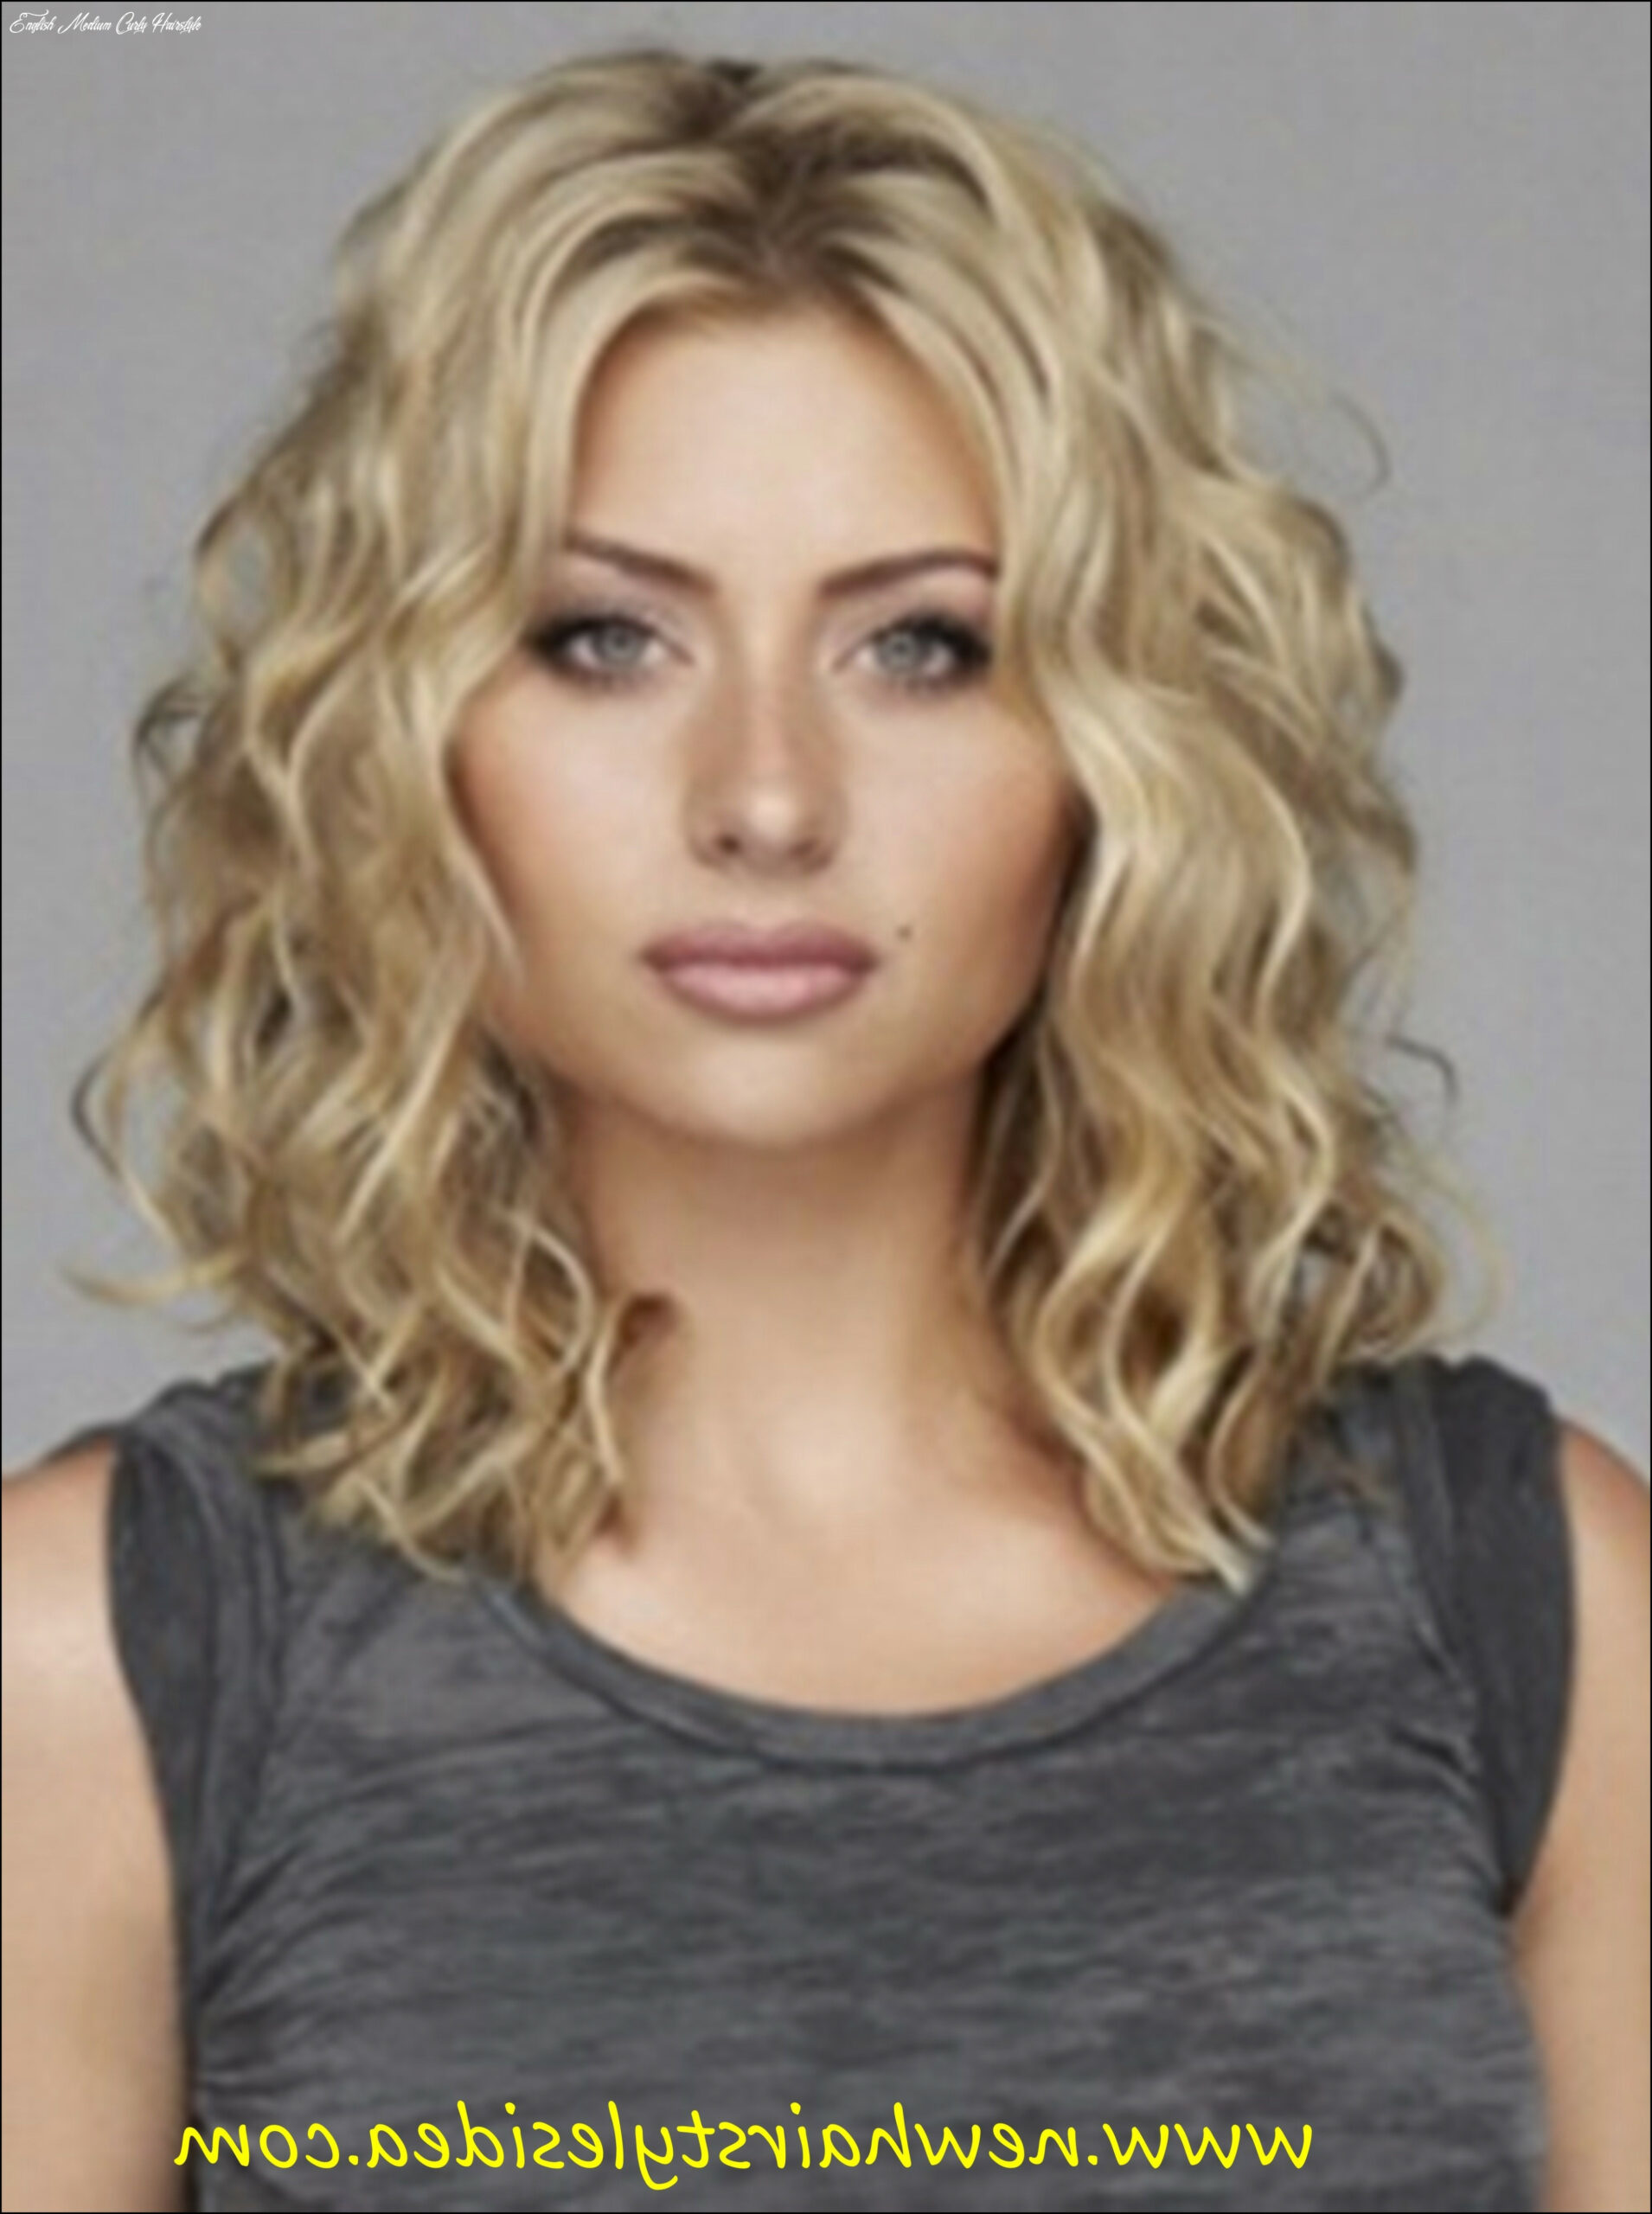 Curly blonde hairstyles blonde curly hairstyles new hairstyles